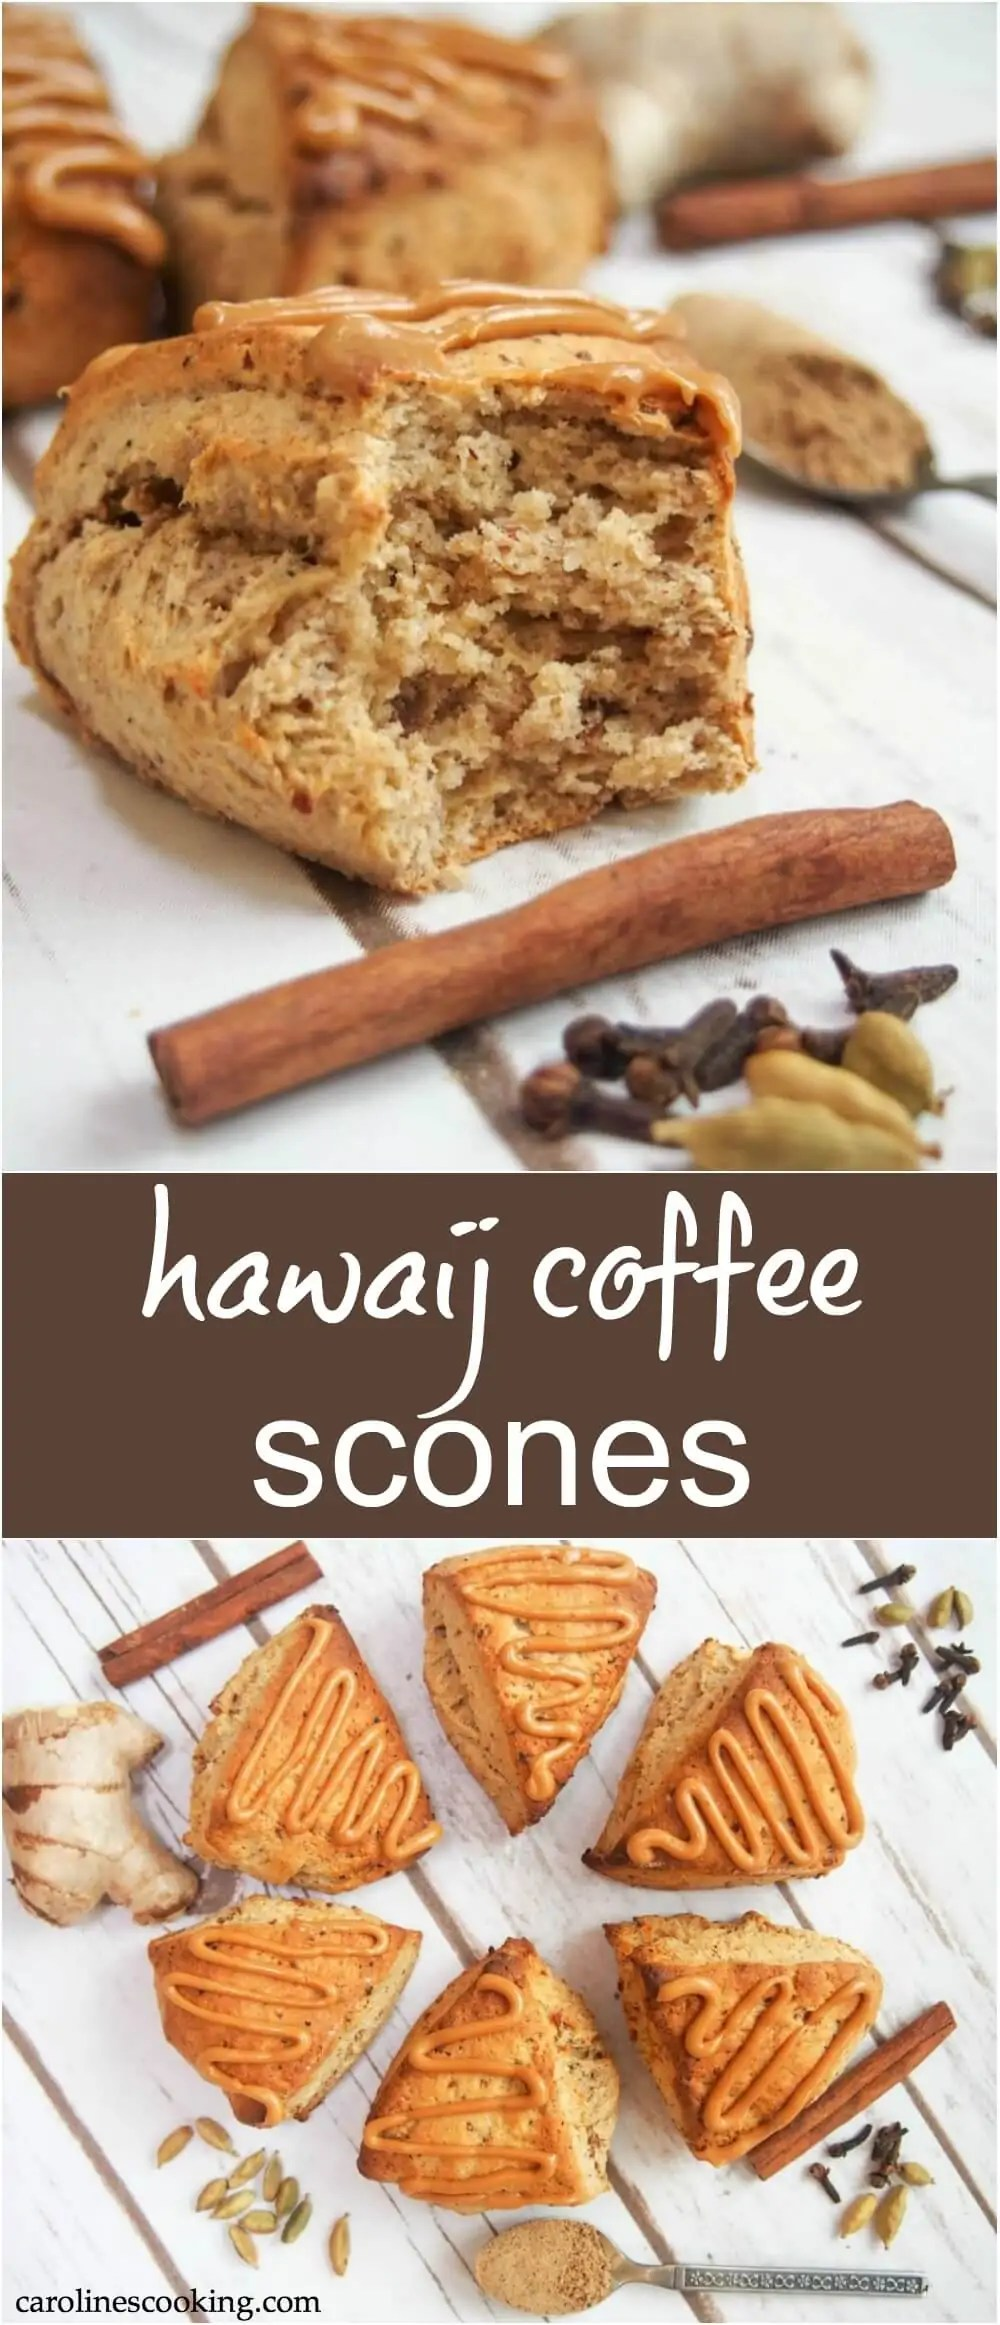 You might not have heard of hawaij spice (I hadn't), but let me just say you'll be wanting these hawaij coffee scones with your next cup of coffee. They're gently spiced, soft and so tasty. They're relatively healthy and so easy to make too! #baking #scones